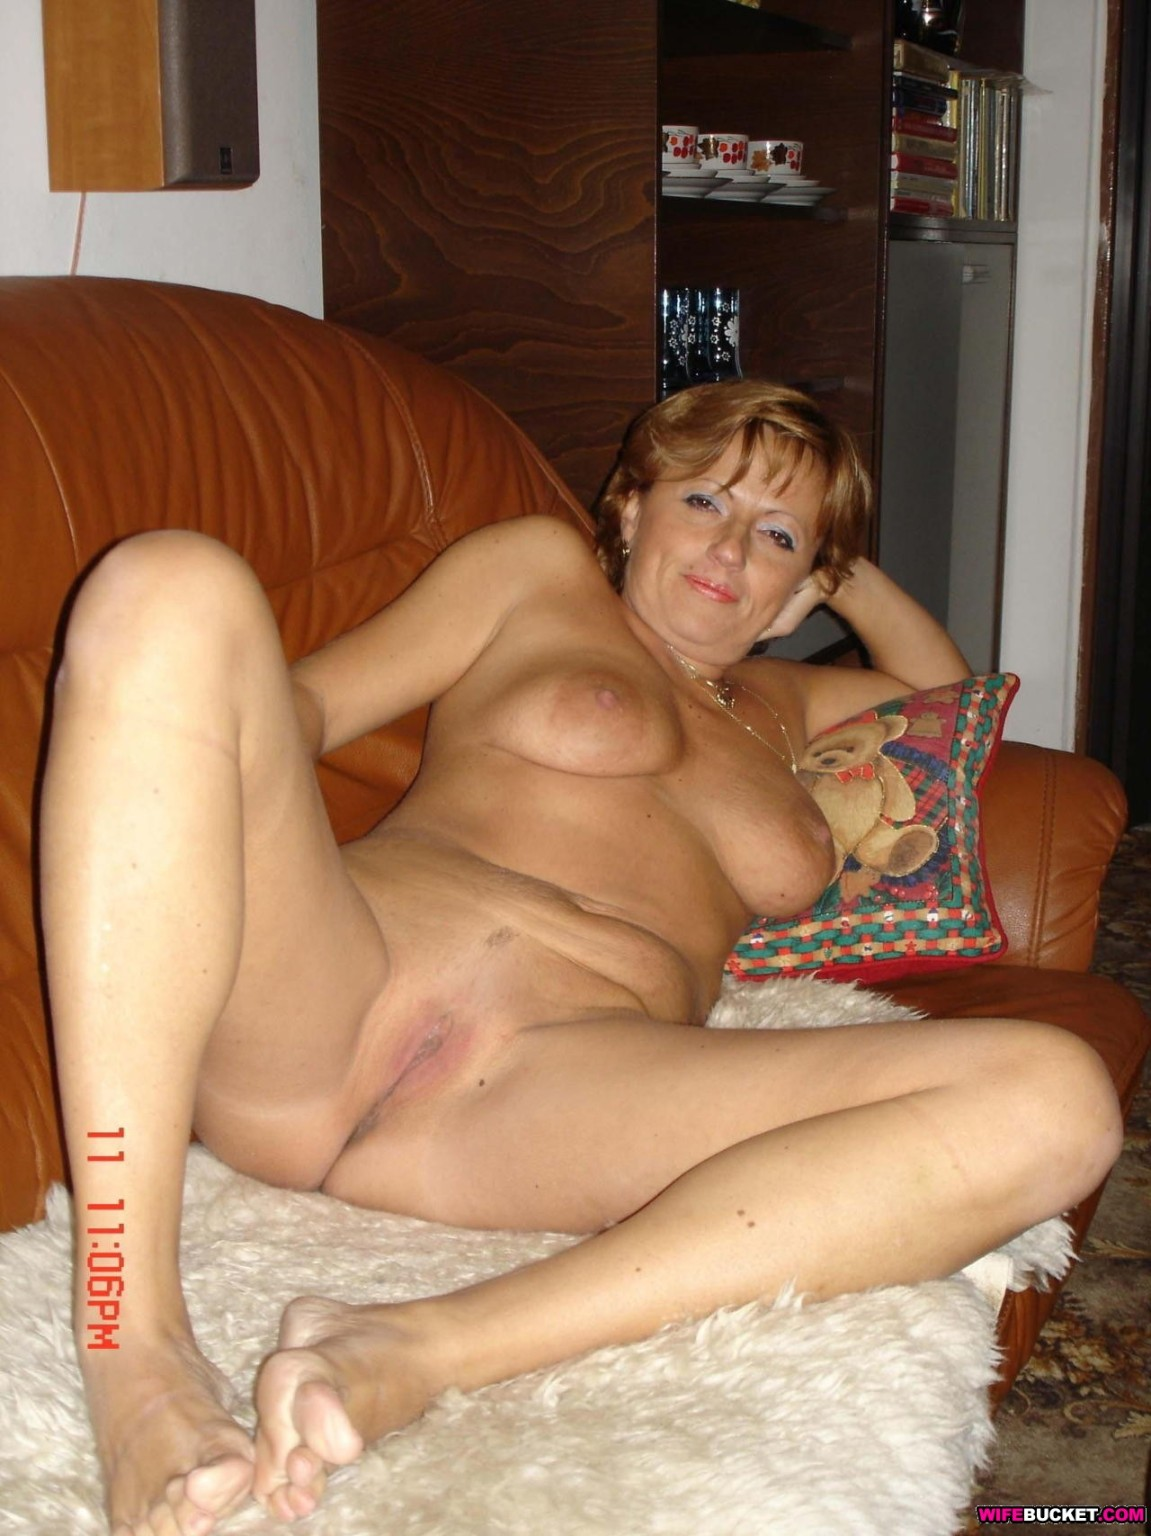 Real Amature Mature Wife Pictures Milf Hot Pics 1